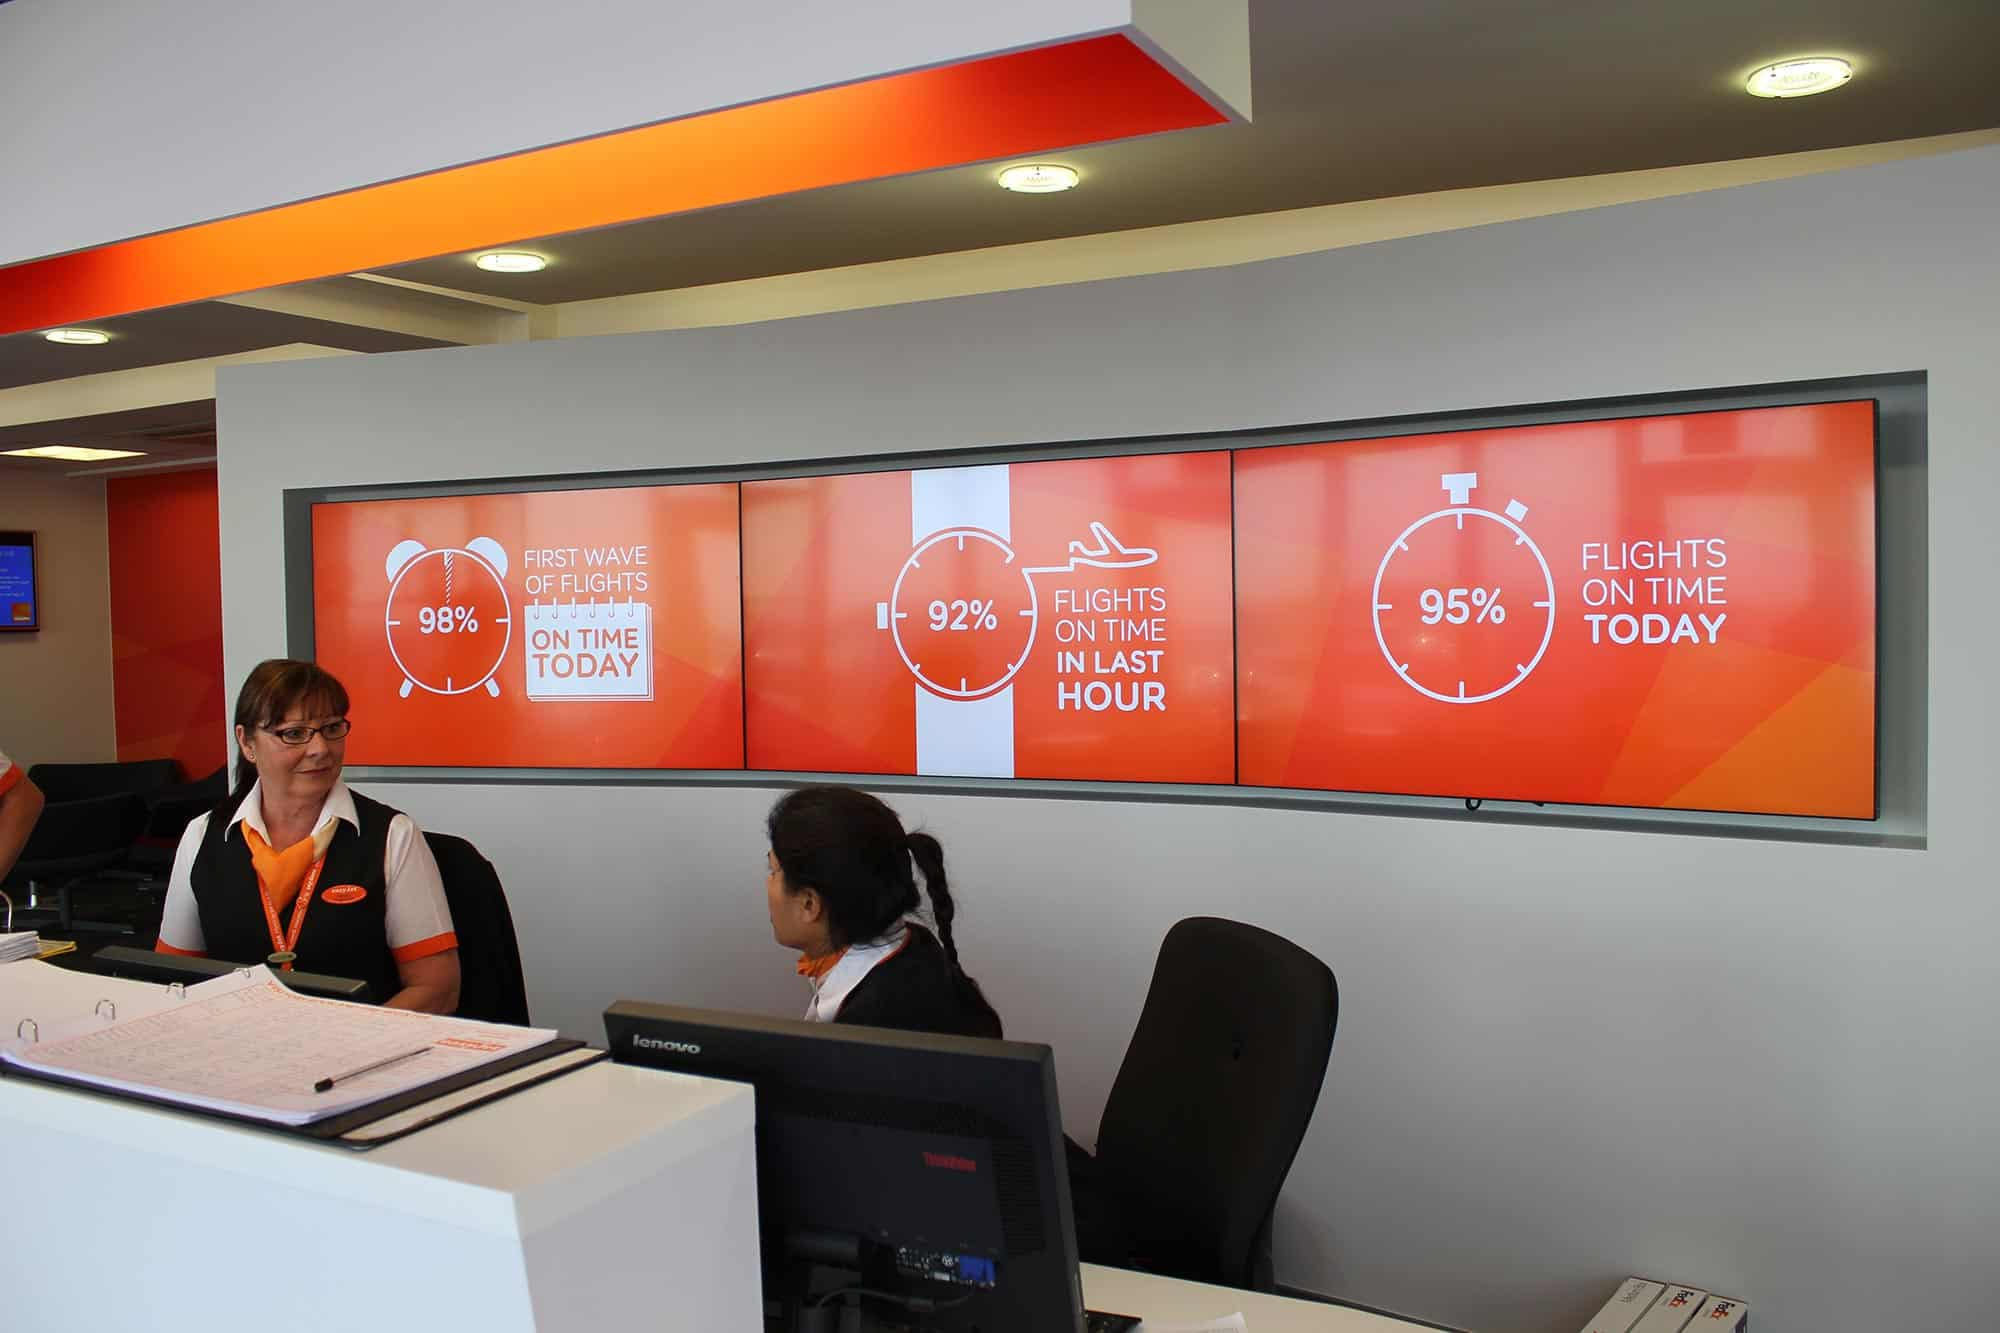 Quad-Vision-multi-screen-information-systems-EasyJet-reception